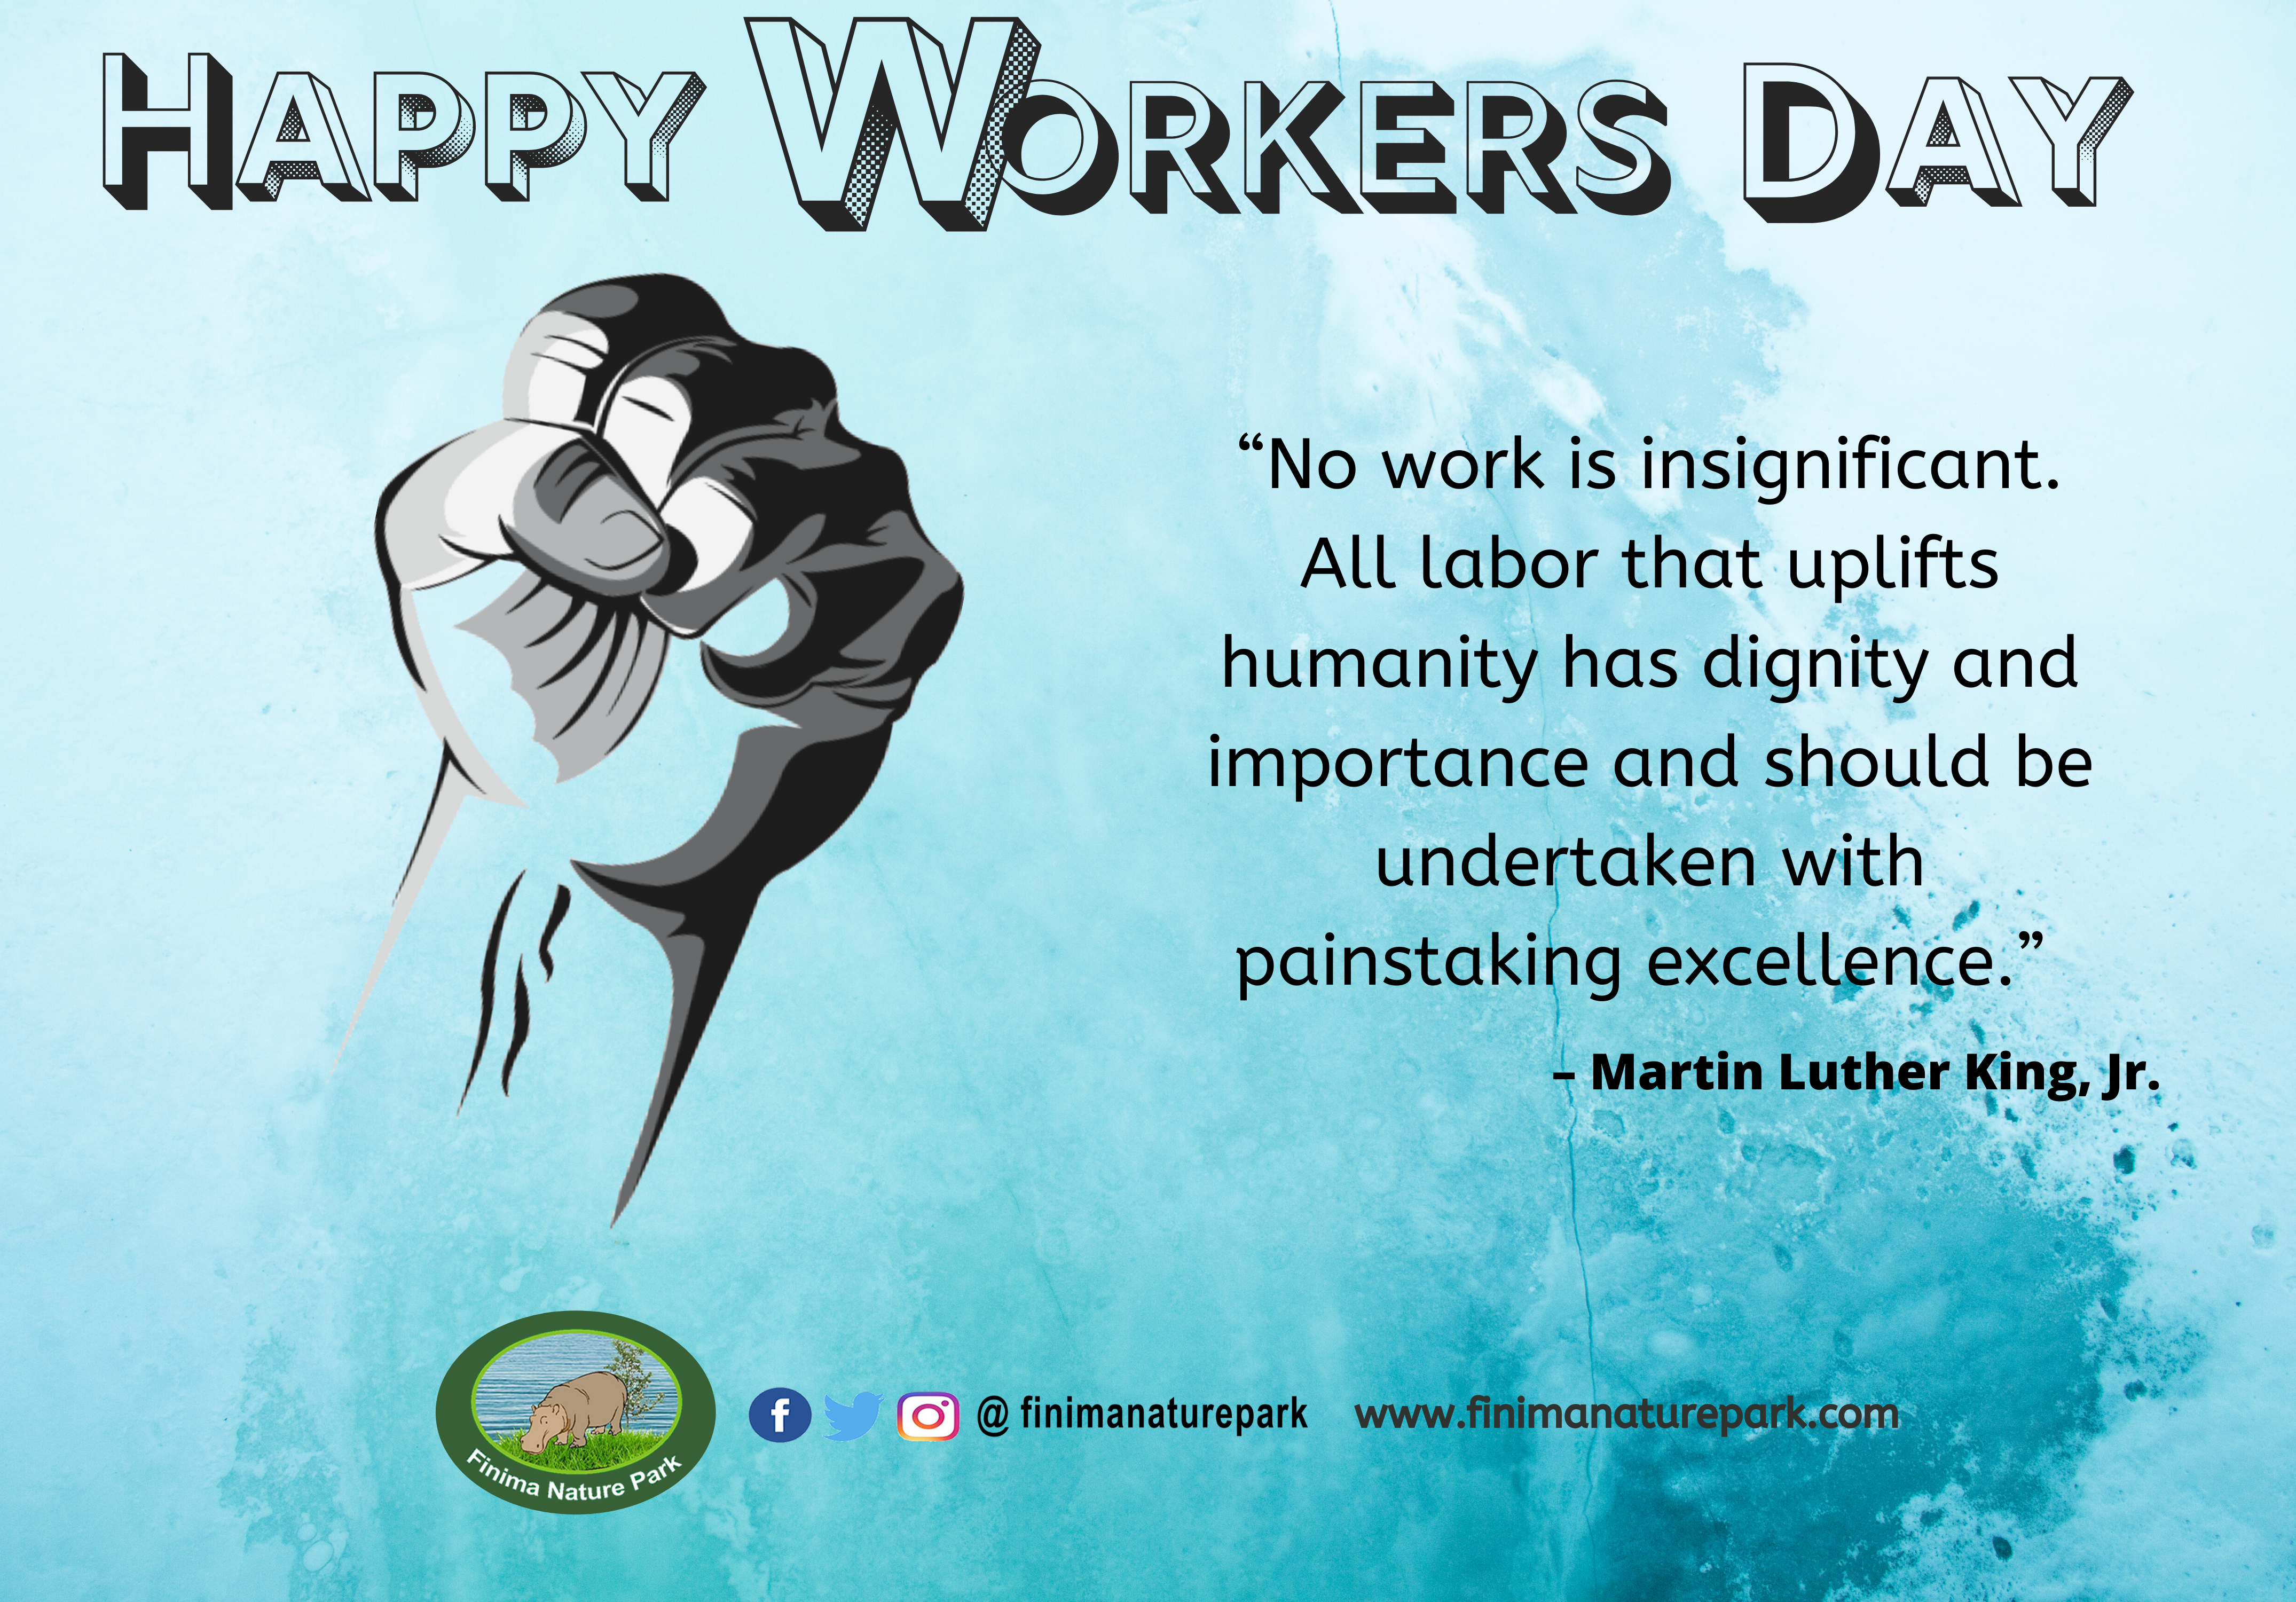 workers day 2020